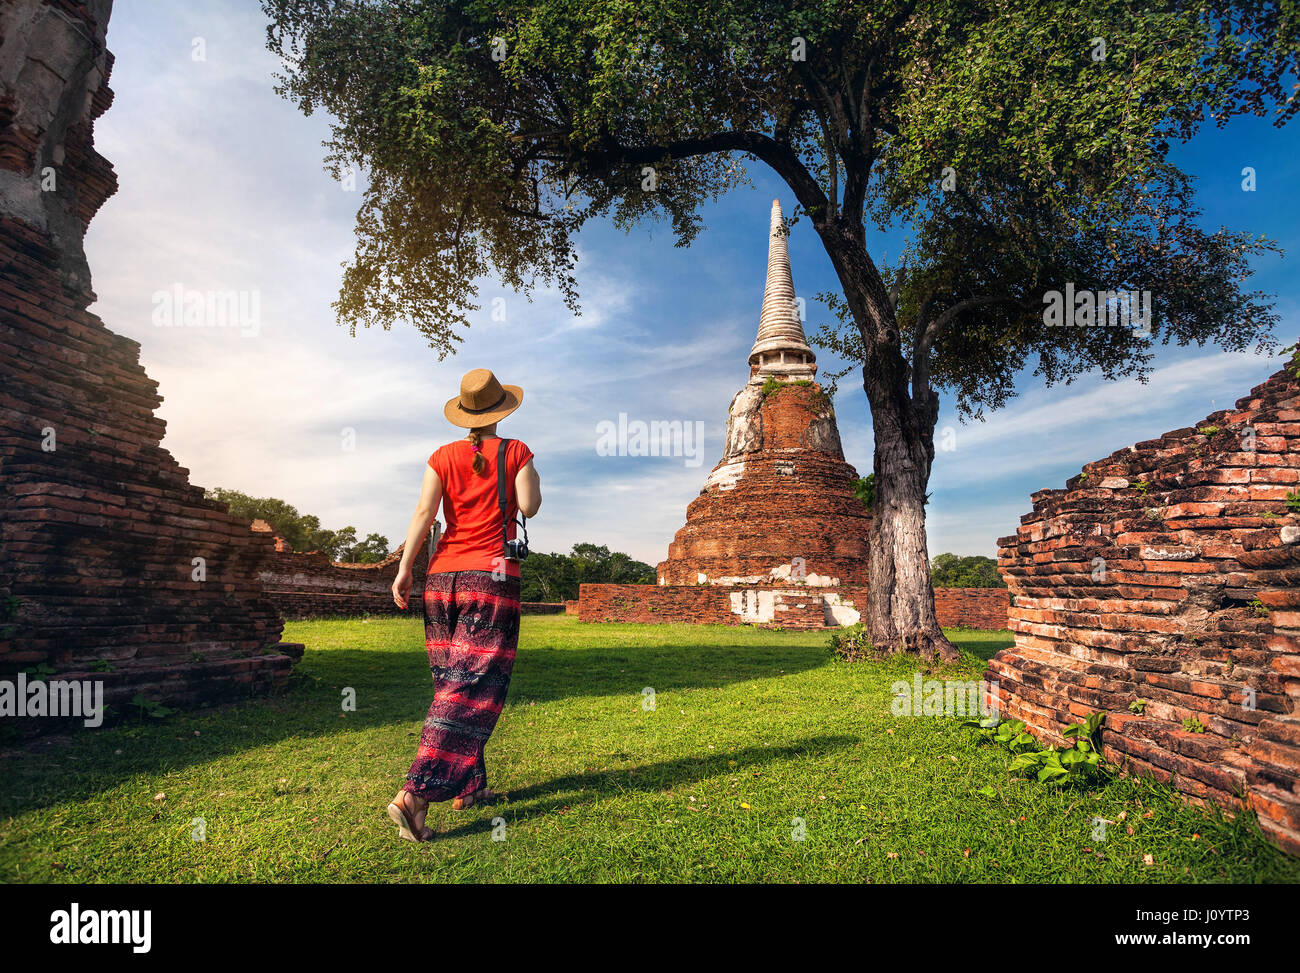 Tourist Woman in red costume walking near ancient ruined stupa with photo camera in Ayutthaya Historical Park, Thailand - Stock Image